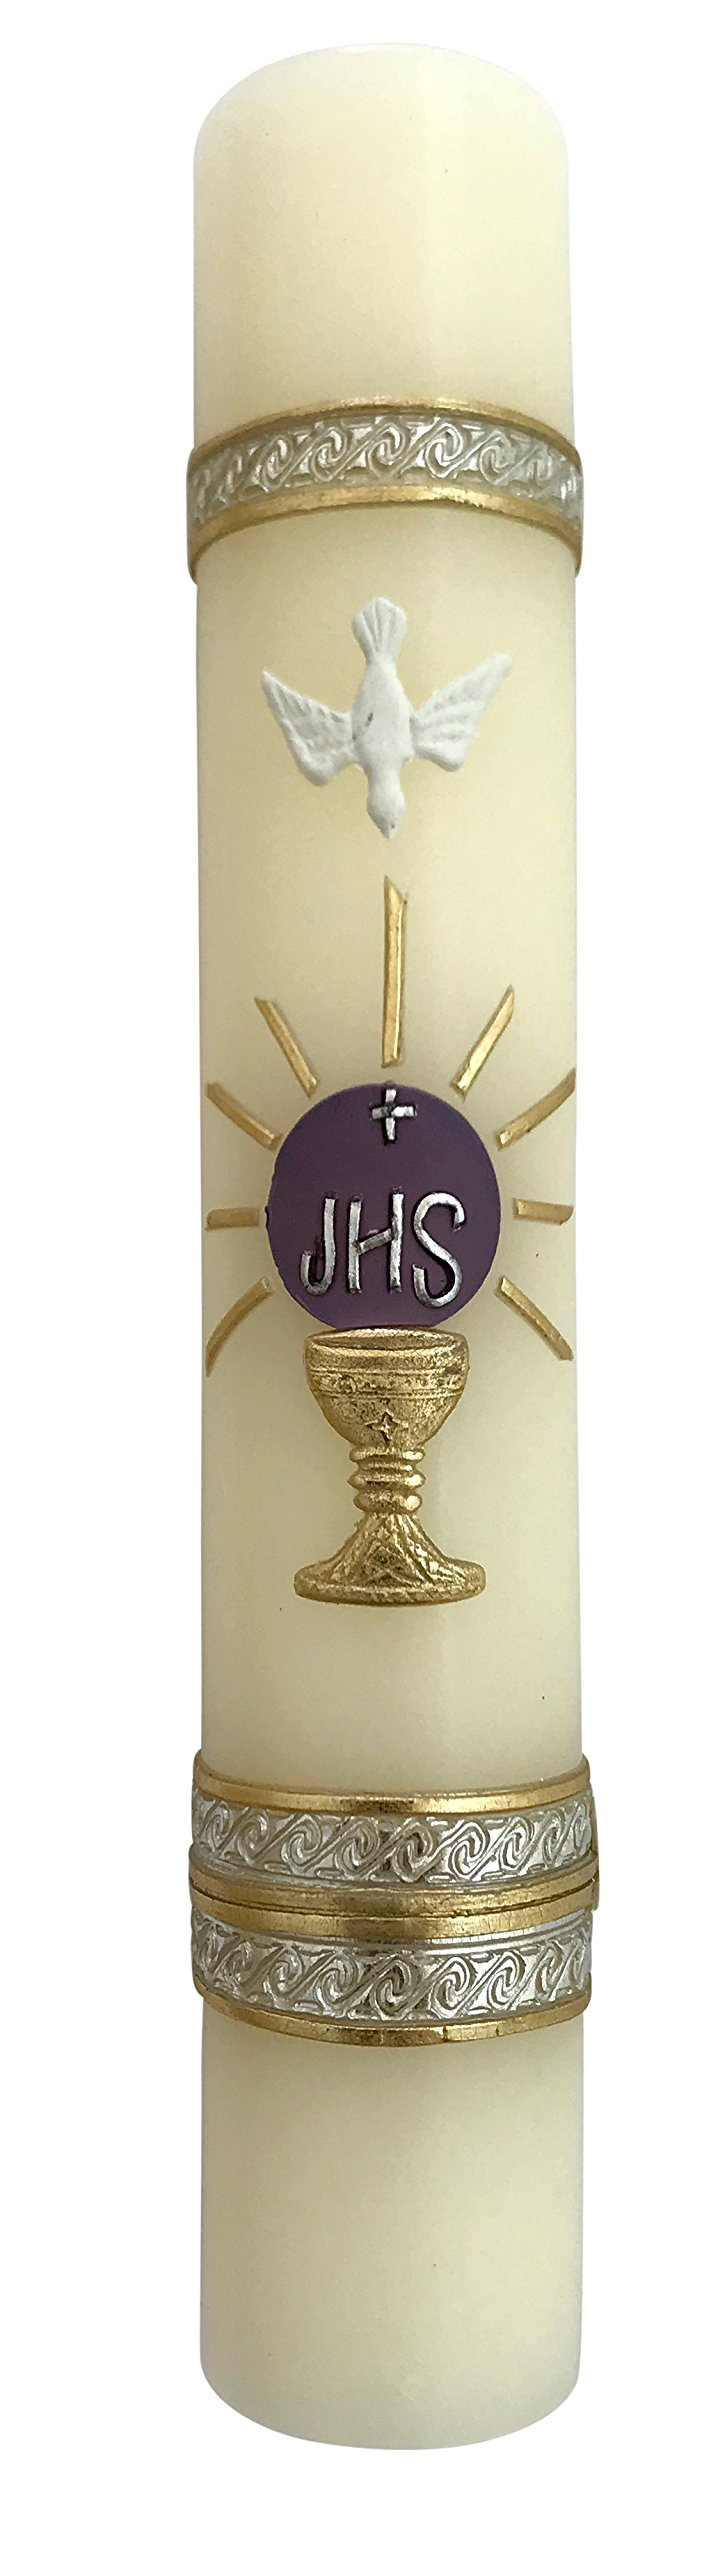 Angelitos de Mexico Purple Monstrance Lent Holy Spirit Candle JHS First Communion Vela Del Espiritu Santo